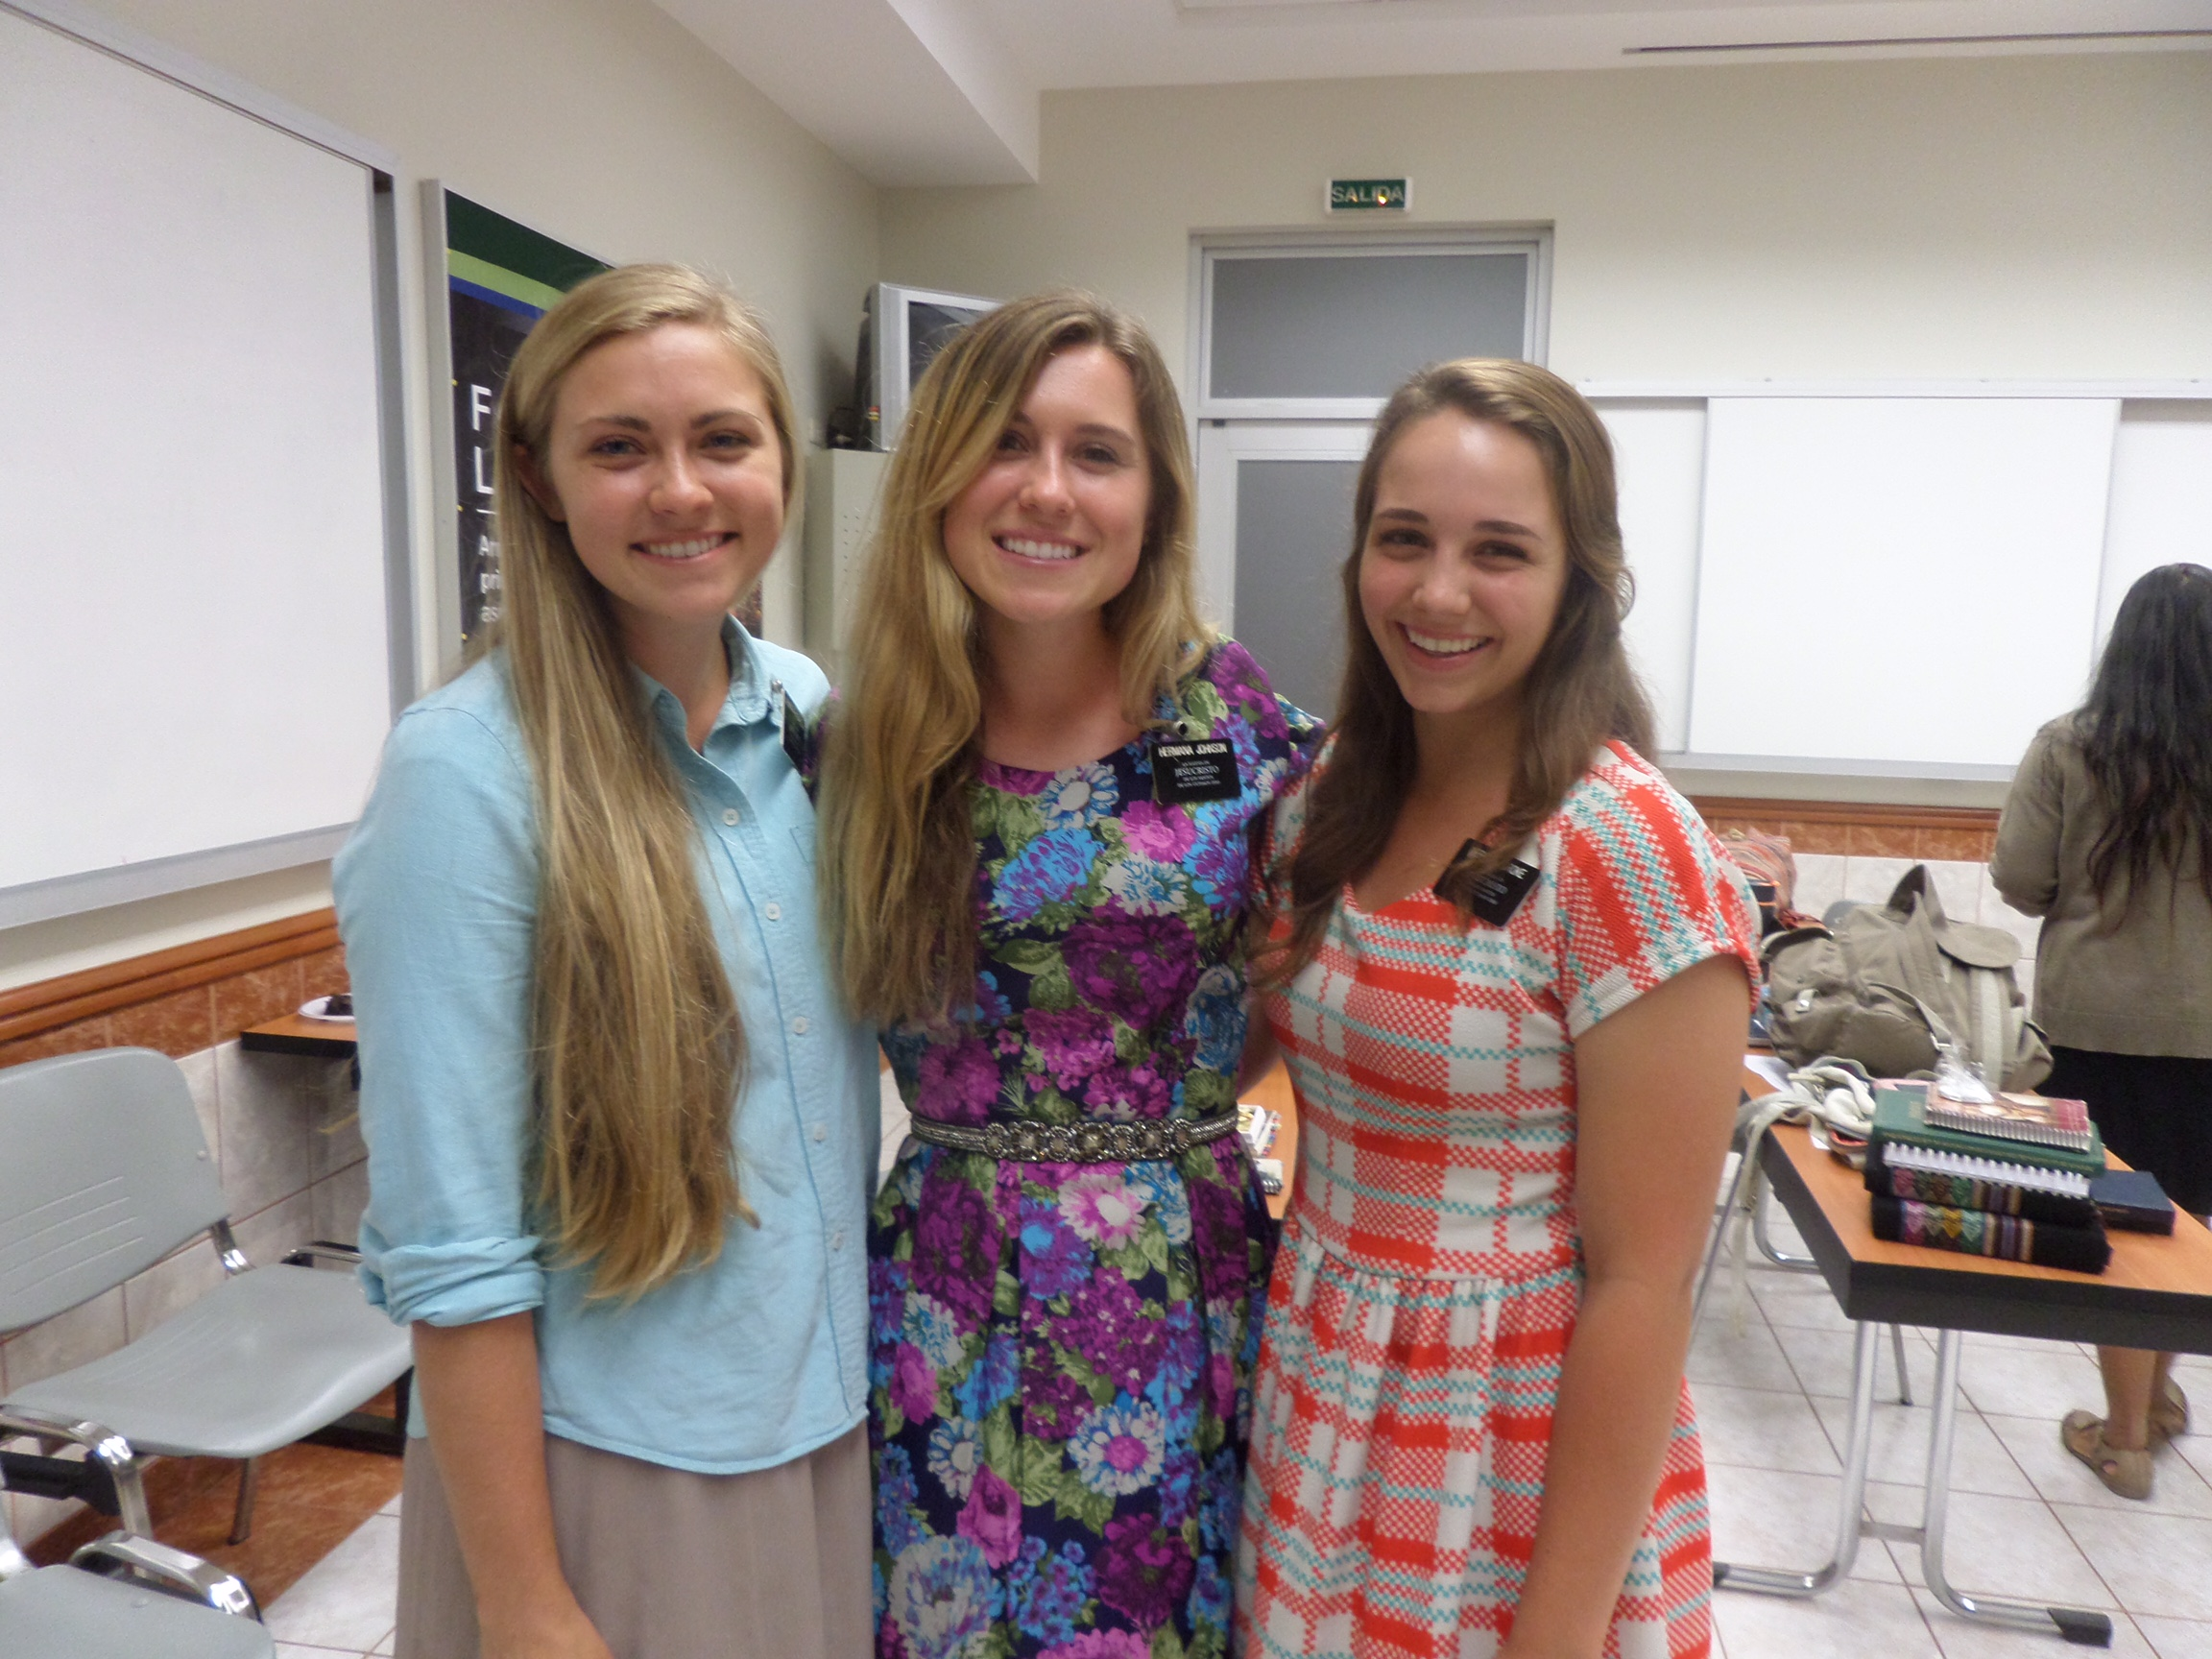 Camille trained Hermana Johnson, and Hermana Johnson trained the sister on the right. #ProudGrandmother :)